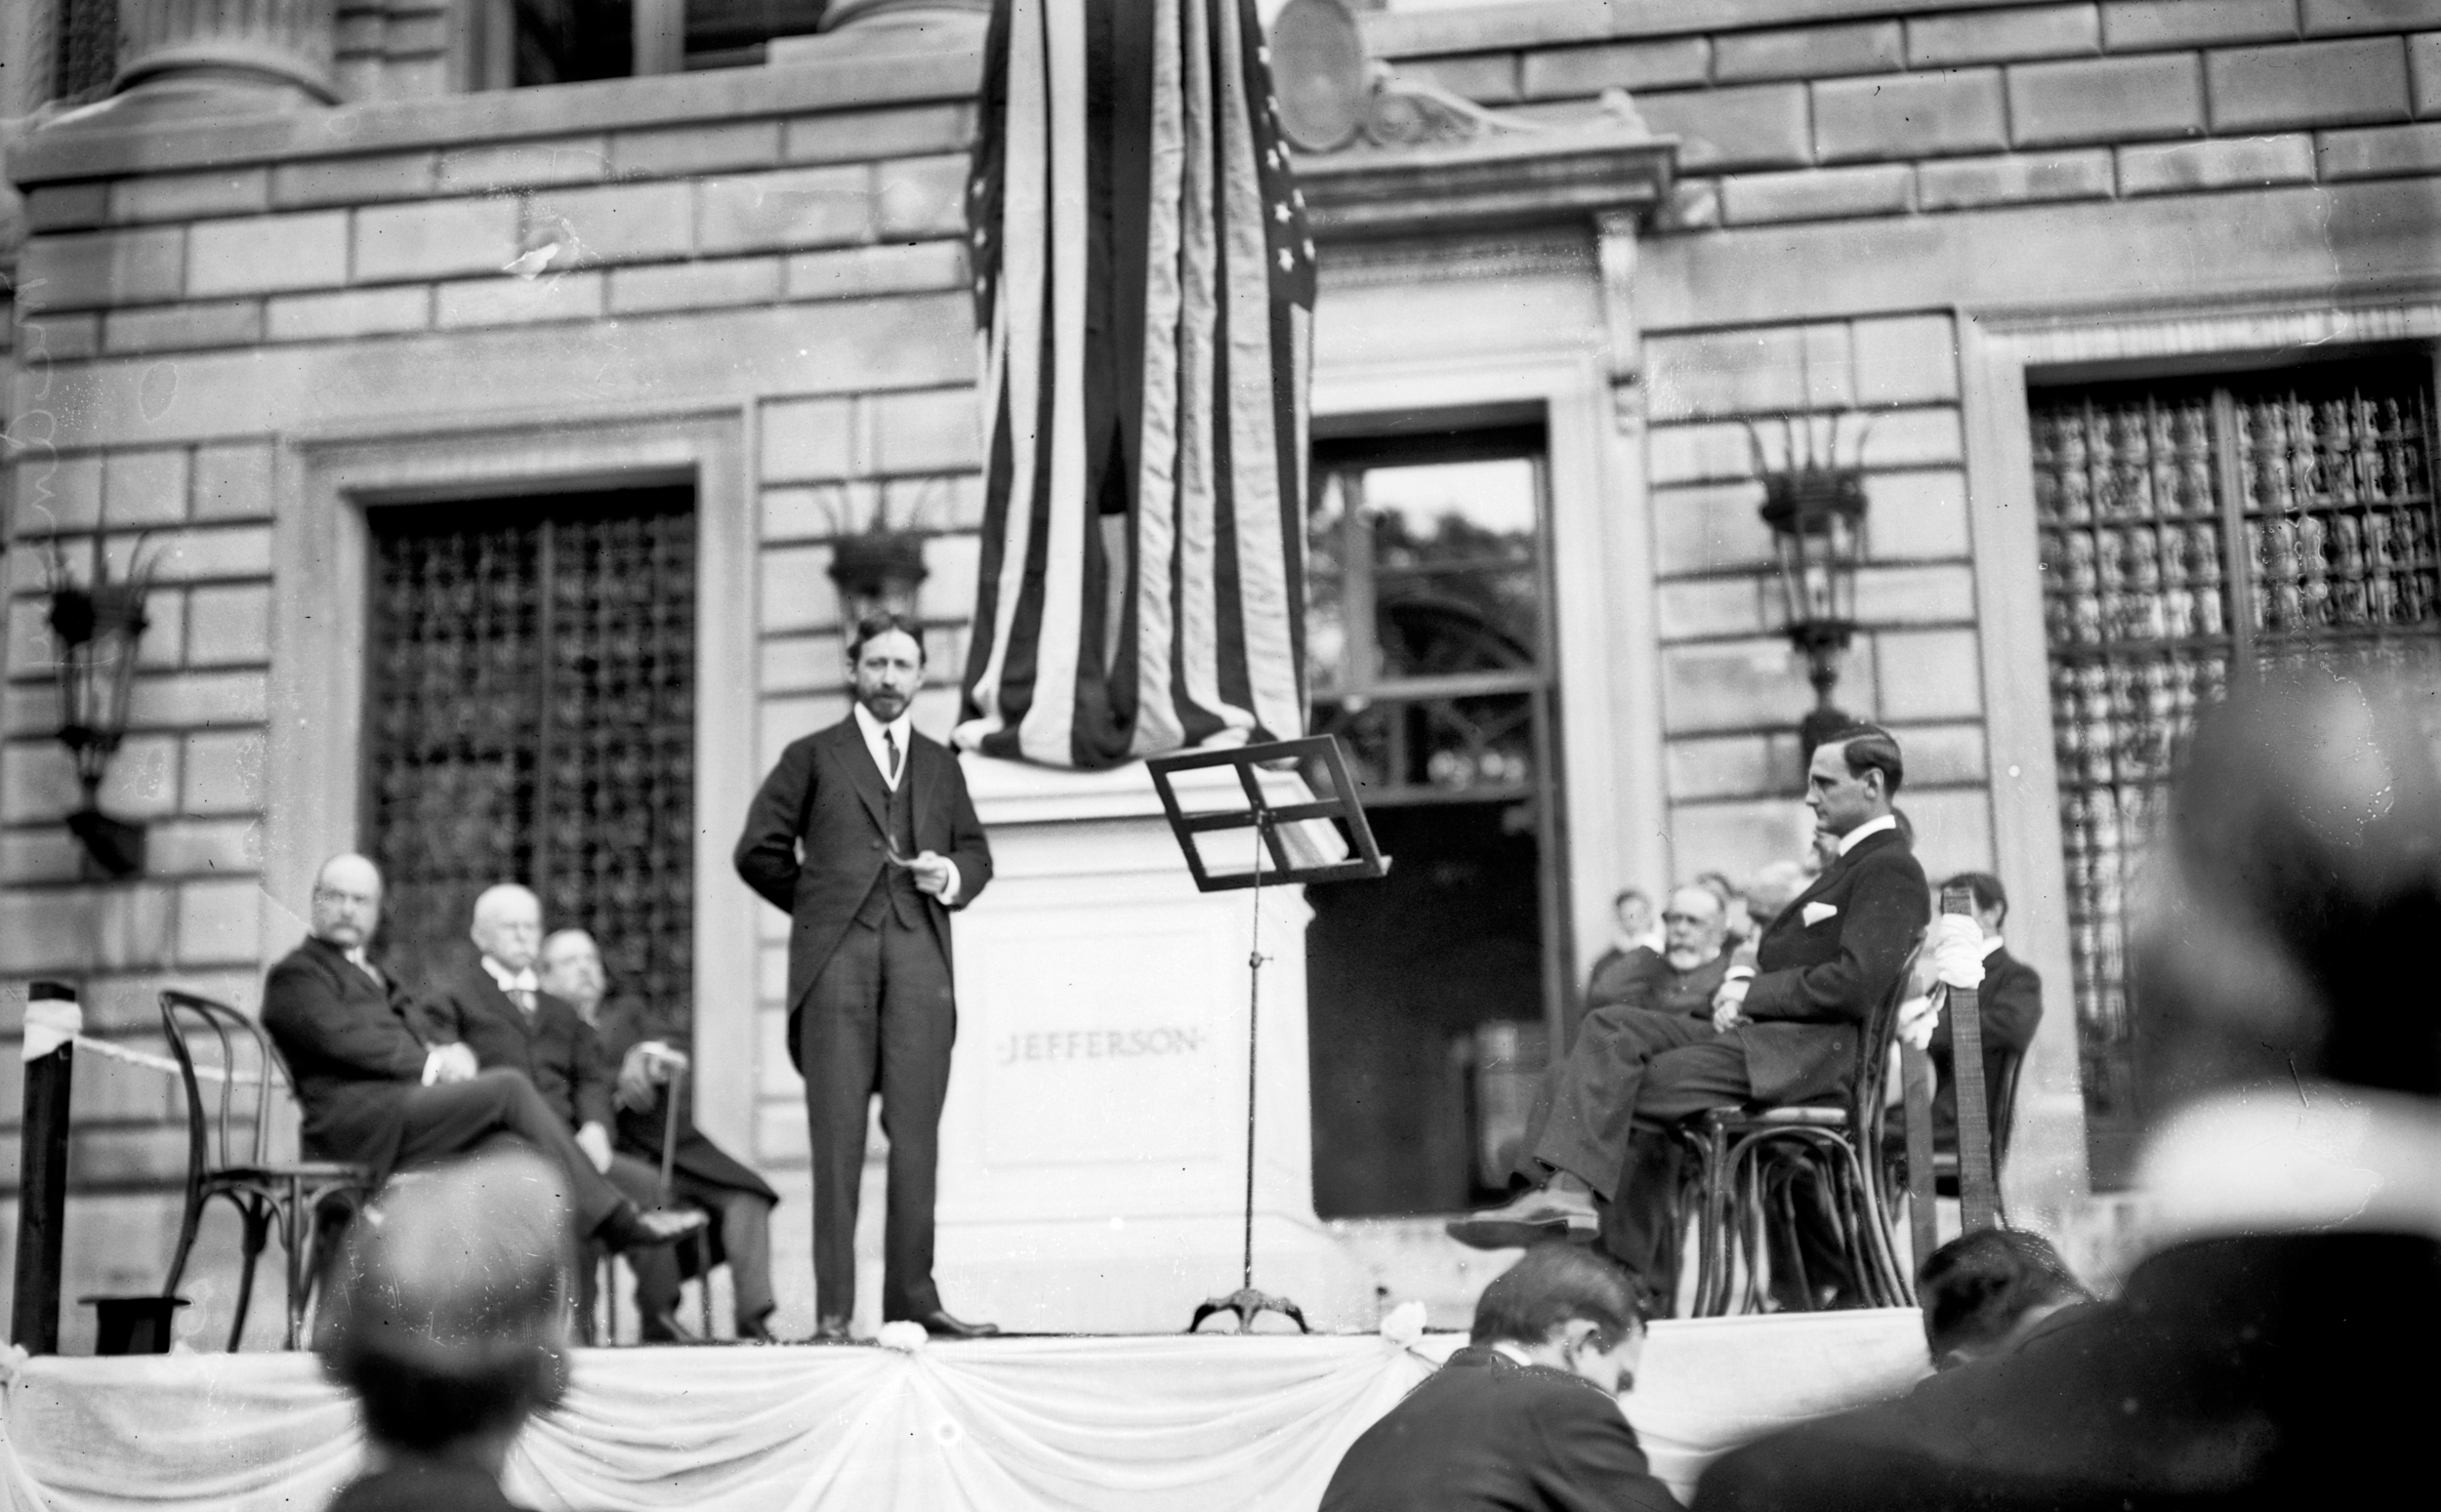 New York Times executive manager George McAneny speaks at Columbia's Jefferson statue unveiling, 2 June 1914. From the  Library of Congress .